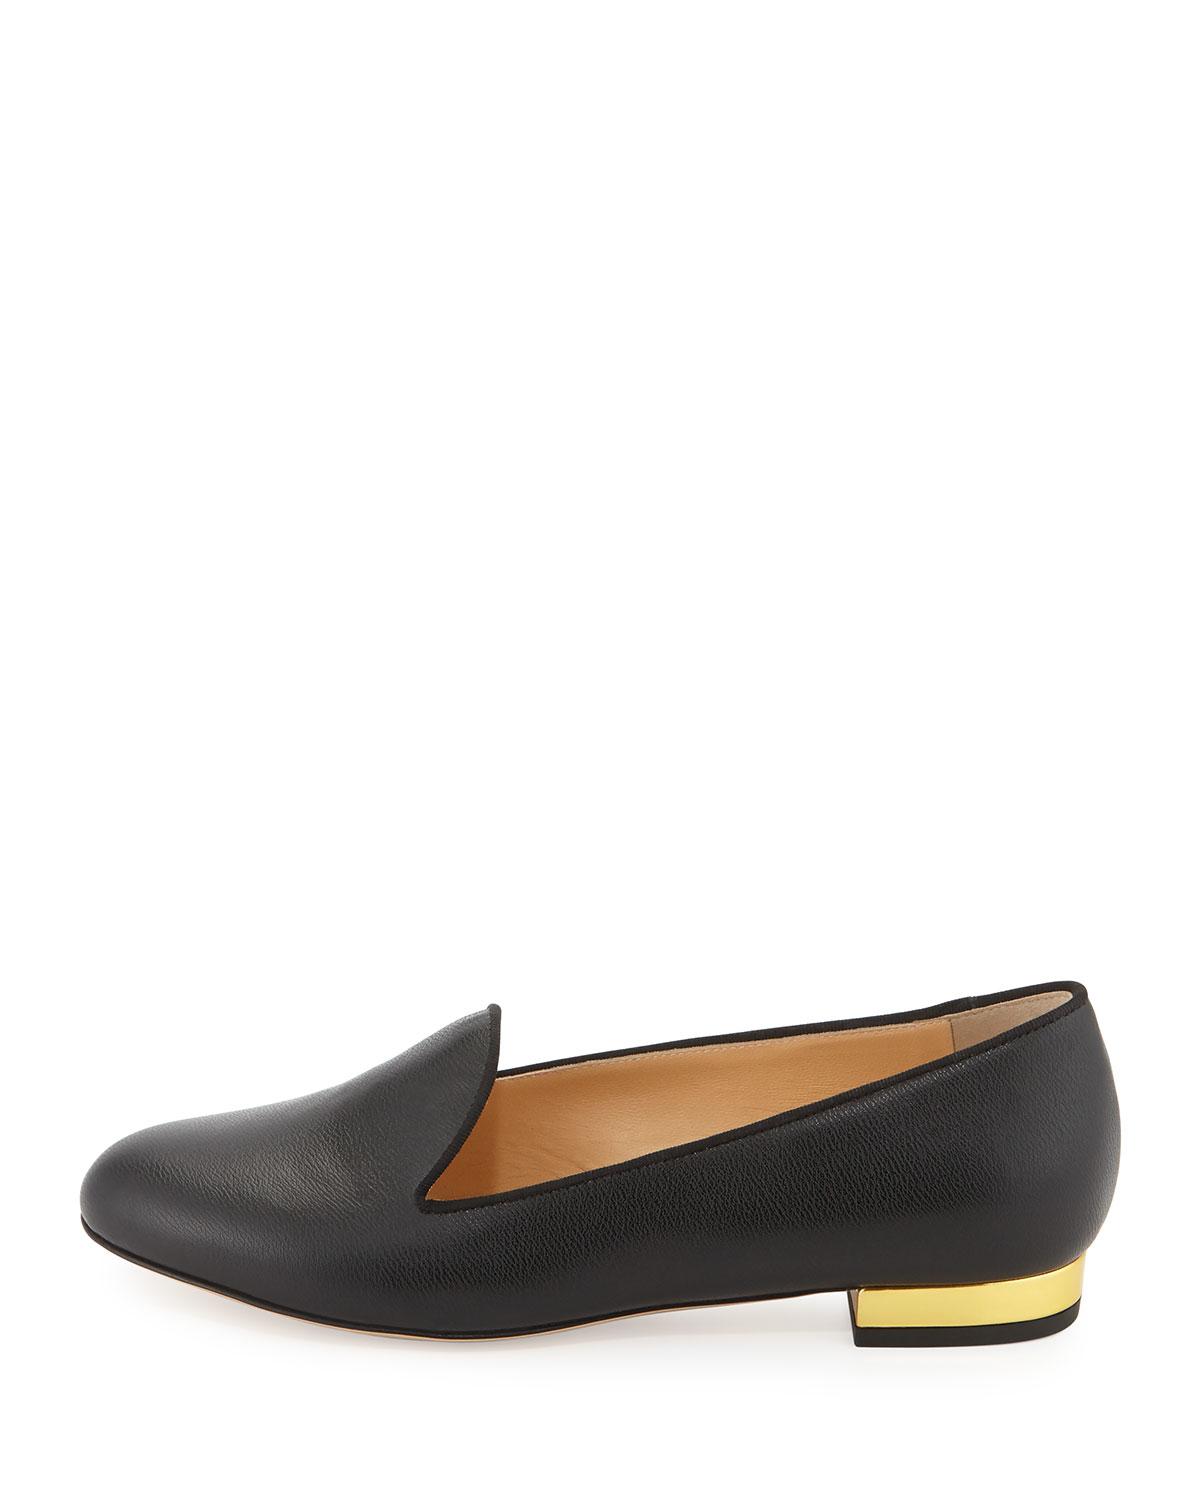 embellished leopard loafers - Black Charlotte Olympia sAmmeA0sq